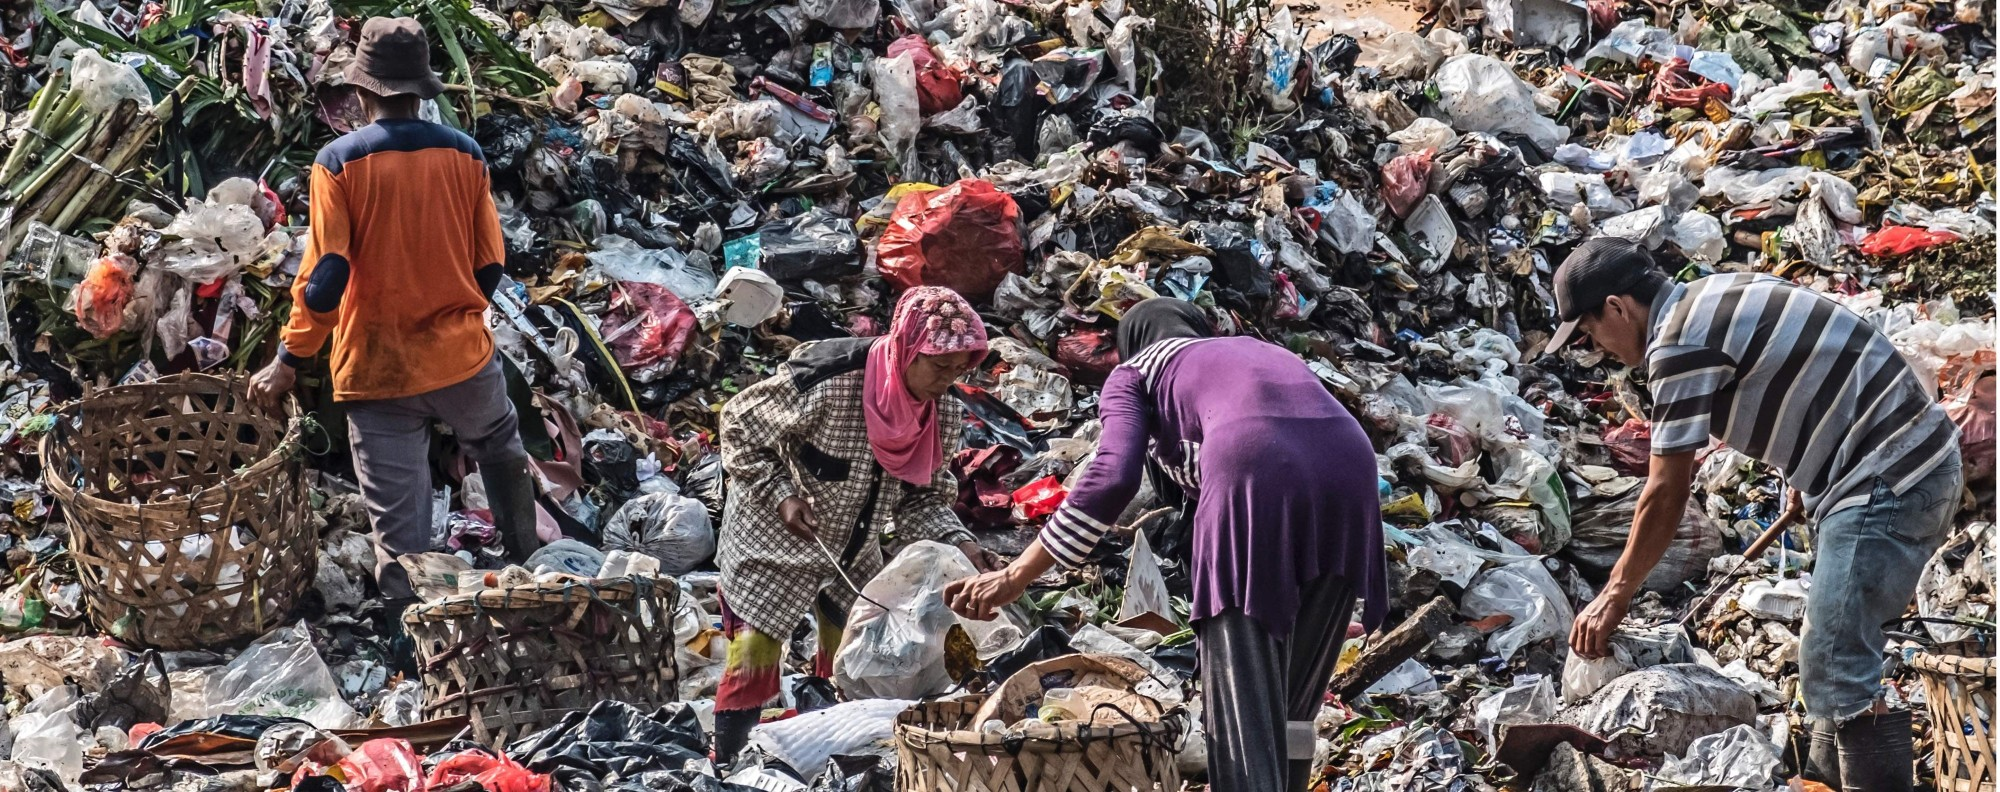 Scavengers at a garbage dump in Jakarta. Photo: AFP